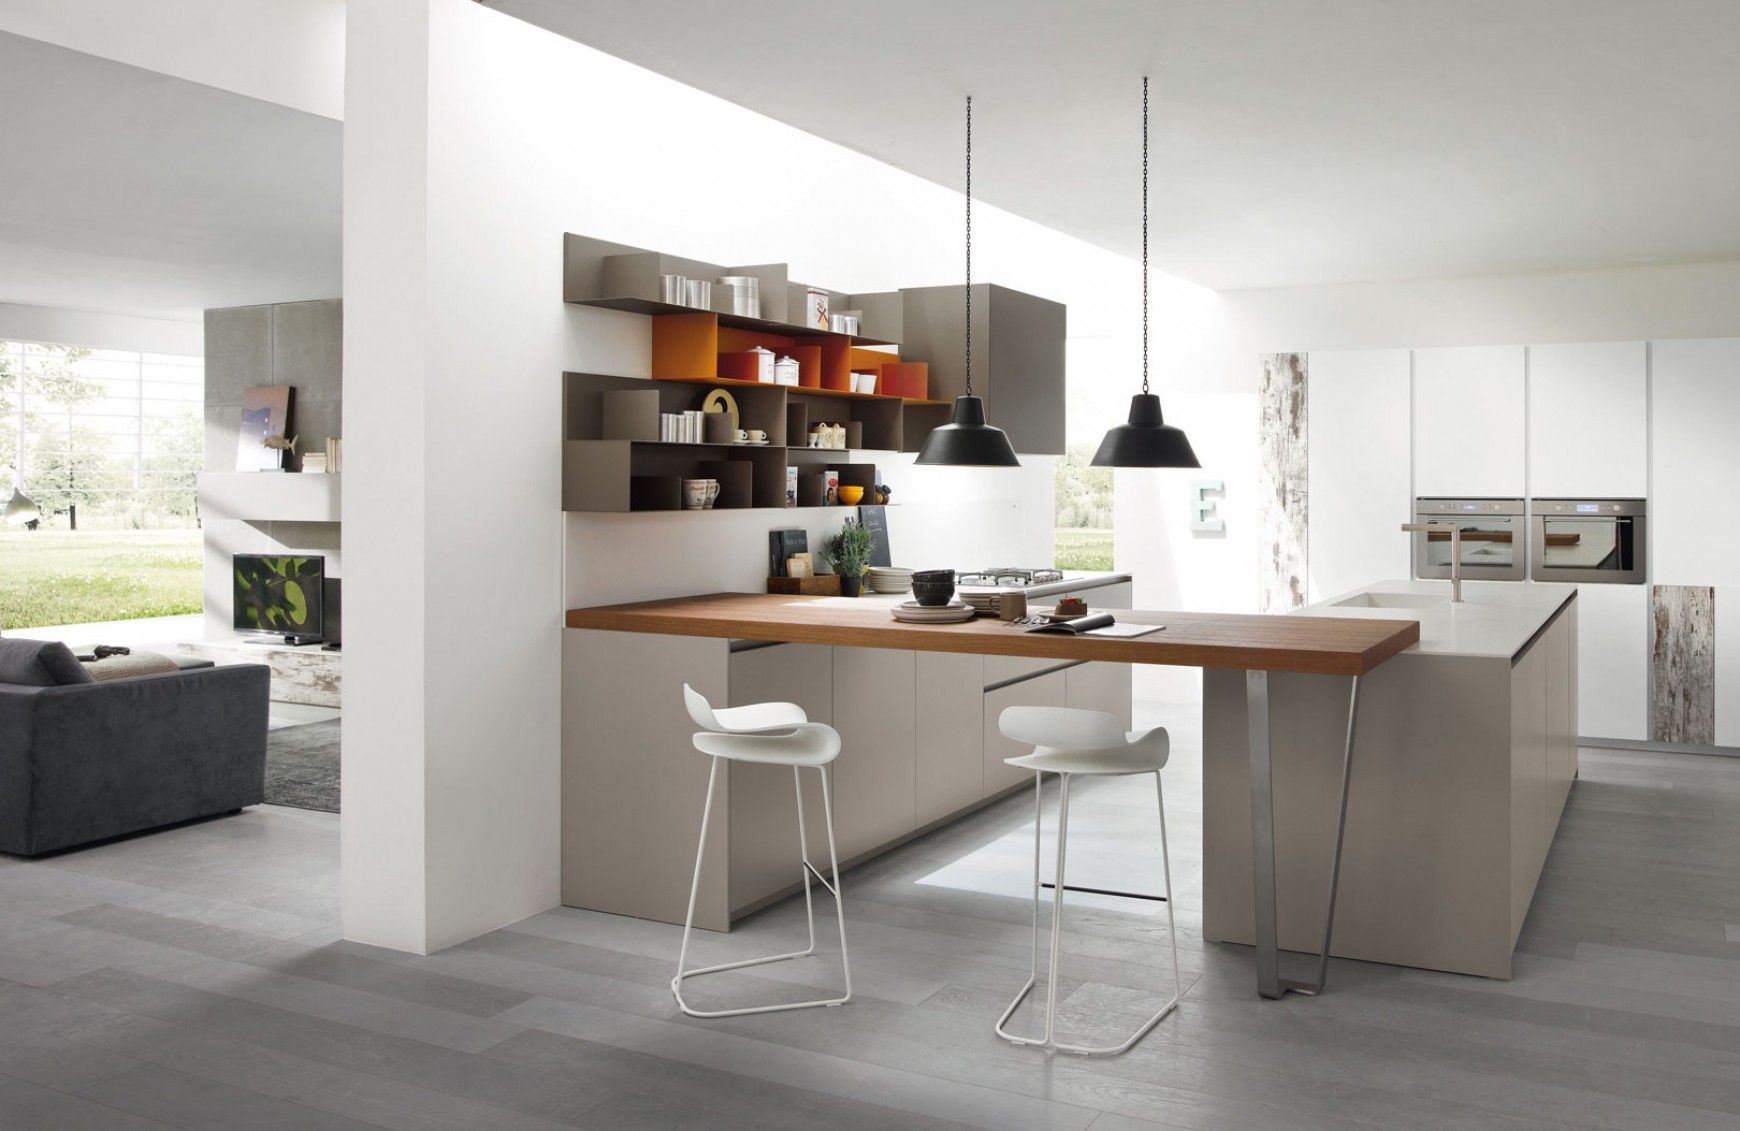 Siloma Camerette ~ Siloma kitchens palazzo interiors and kitchens